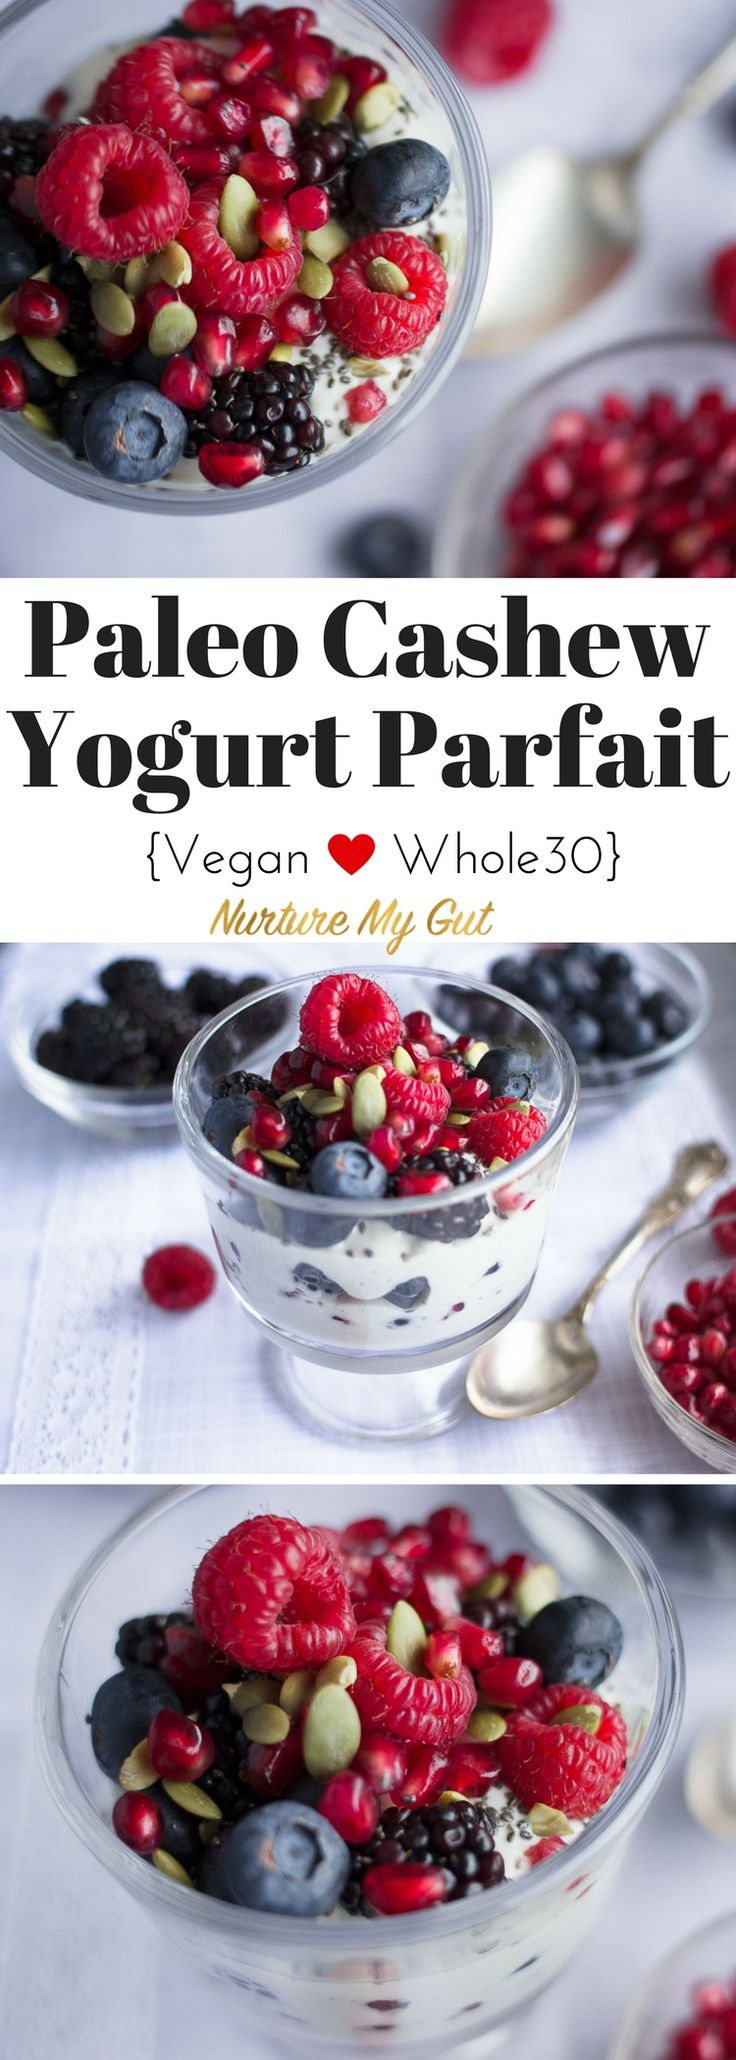 ... Yogurt Infused Recipes on Pinterest | Granola, Yogurt and Plain yogurt